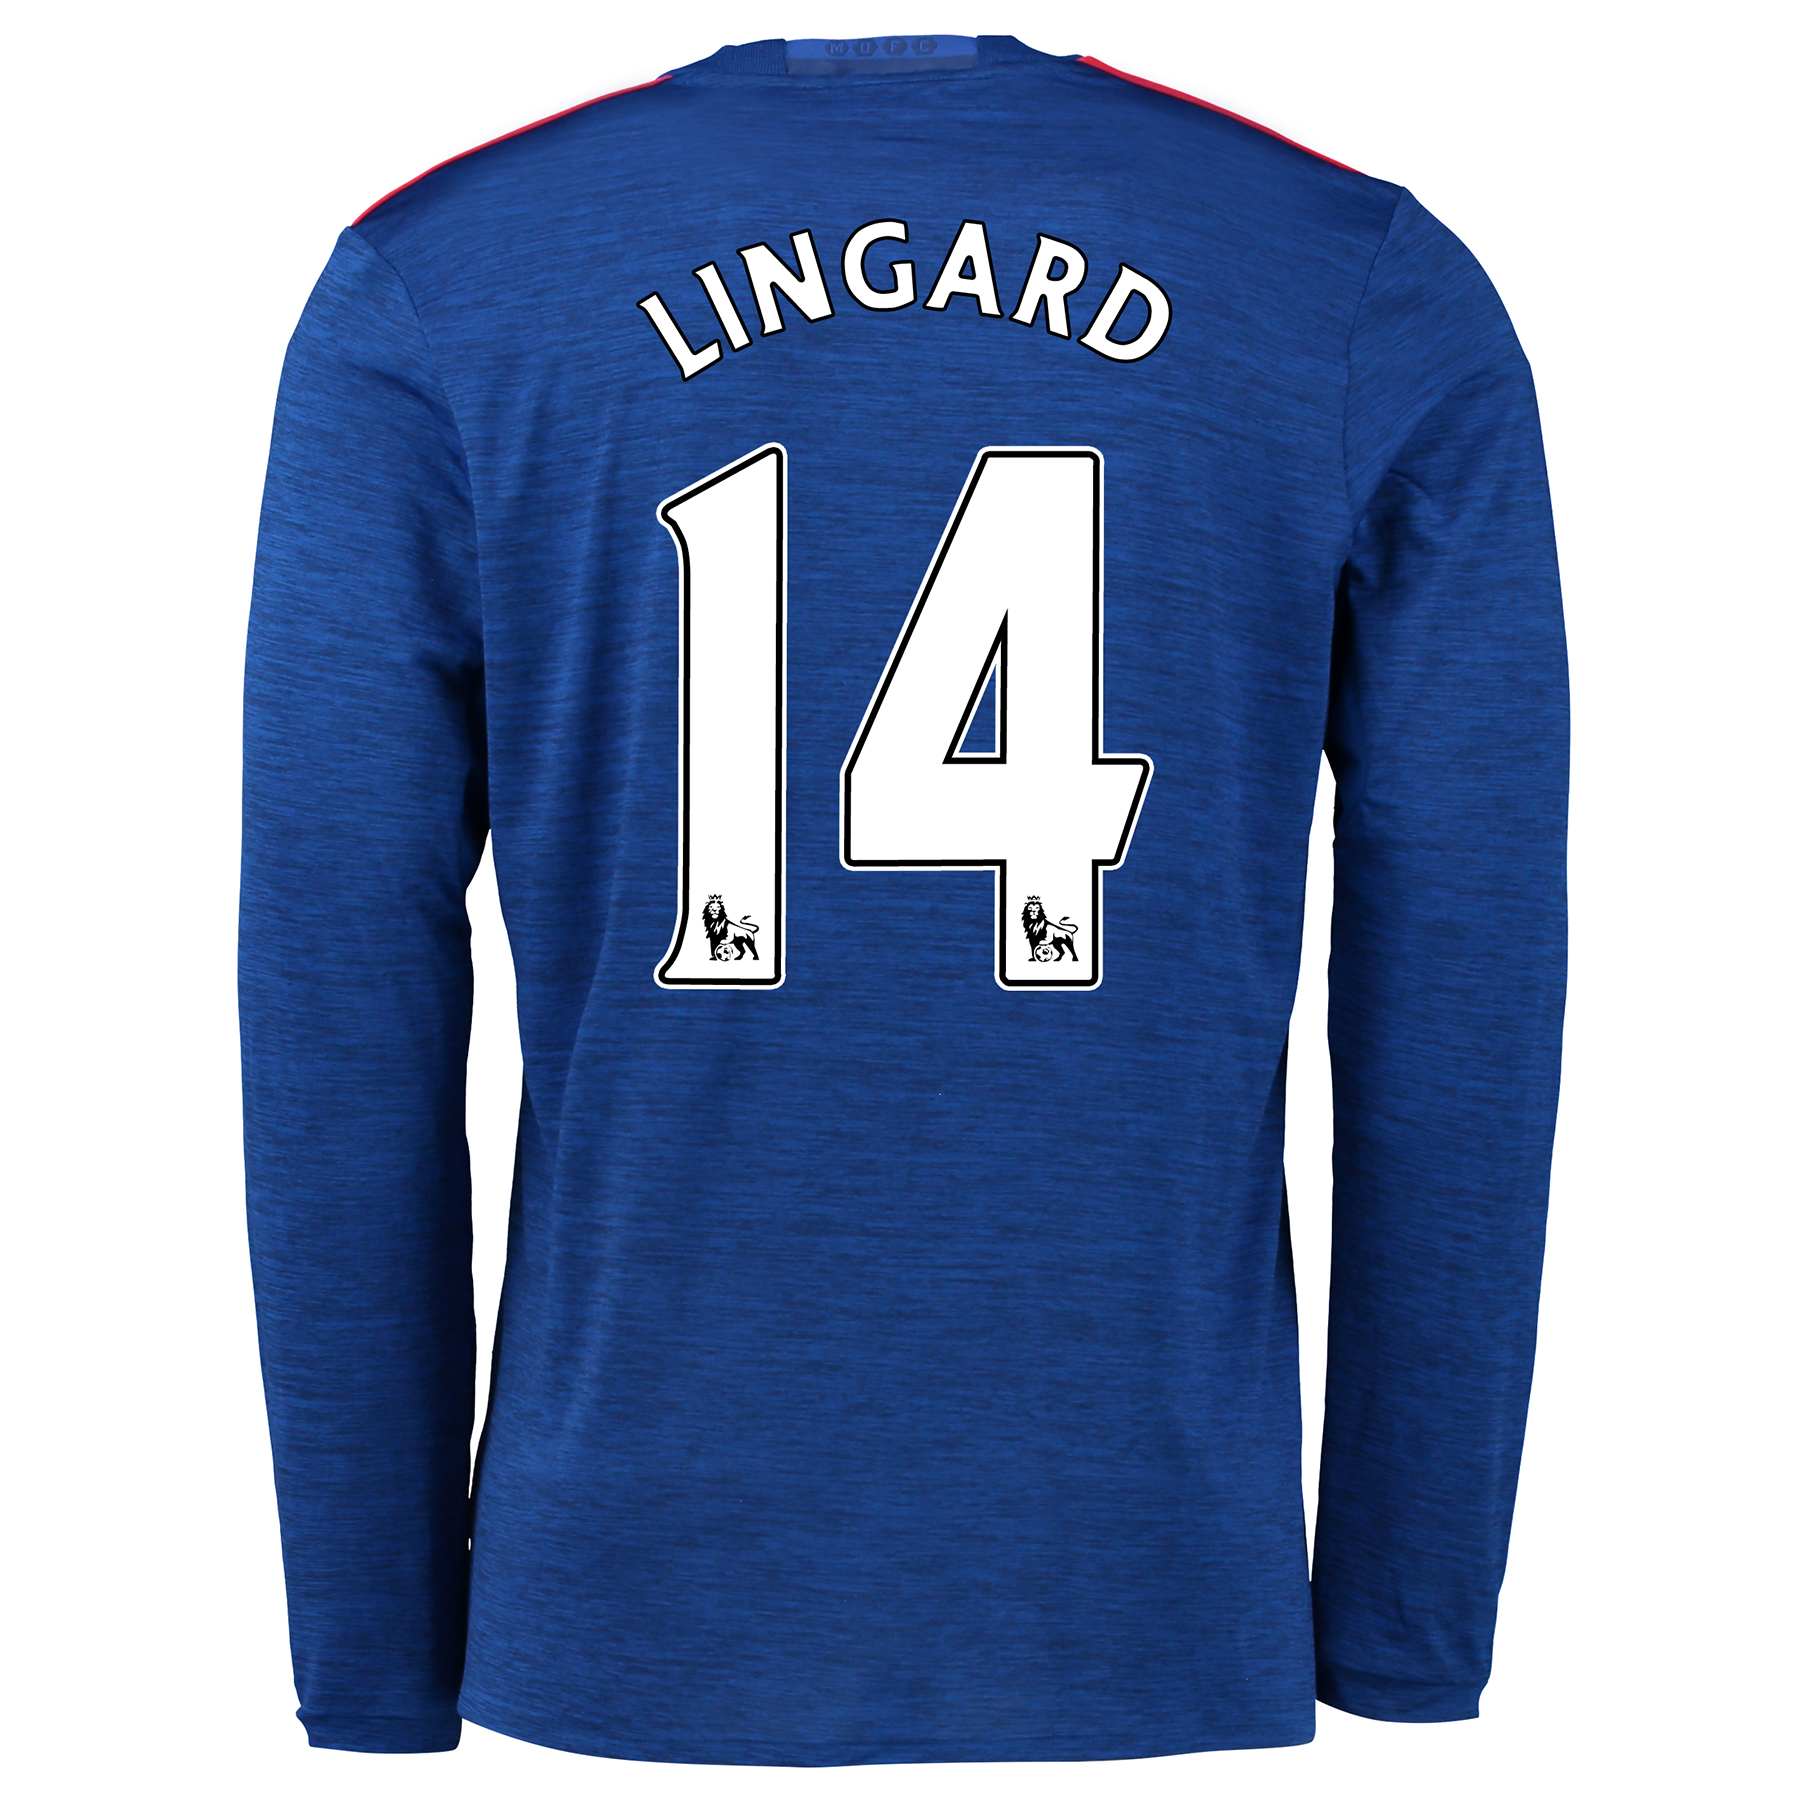 Manchester United Away Shirt 2016-17 - Long Sleeve with Lingard 14 pri